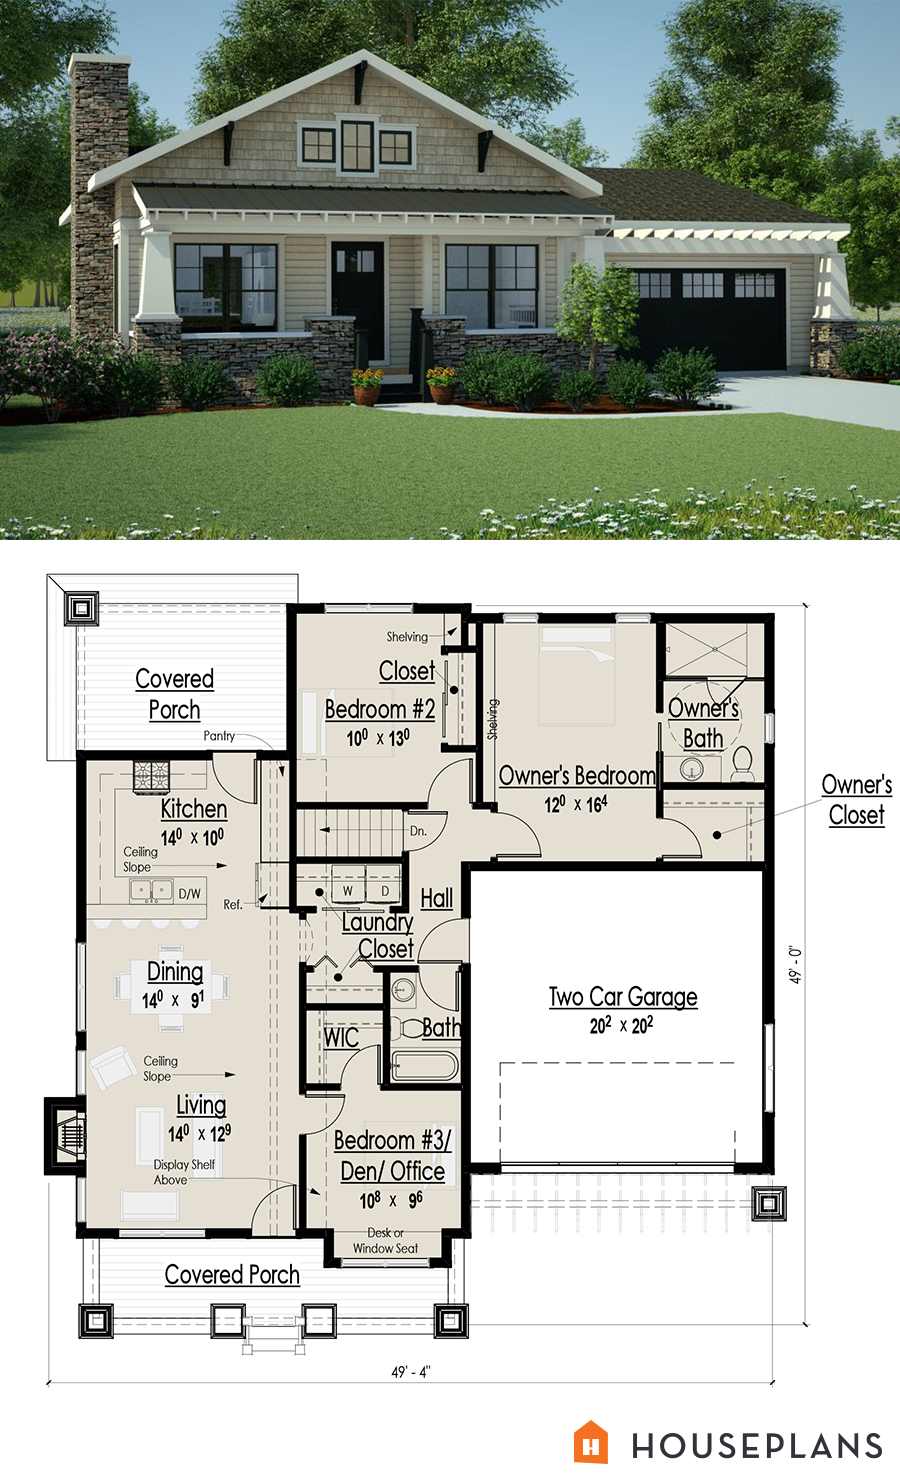 Ranch Style House Plan 3 Beds 2 5 Baths 1625 Sq Ft Plan 126 143 Craftsman House Plans Ranch House Plans New House Plans